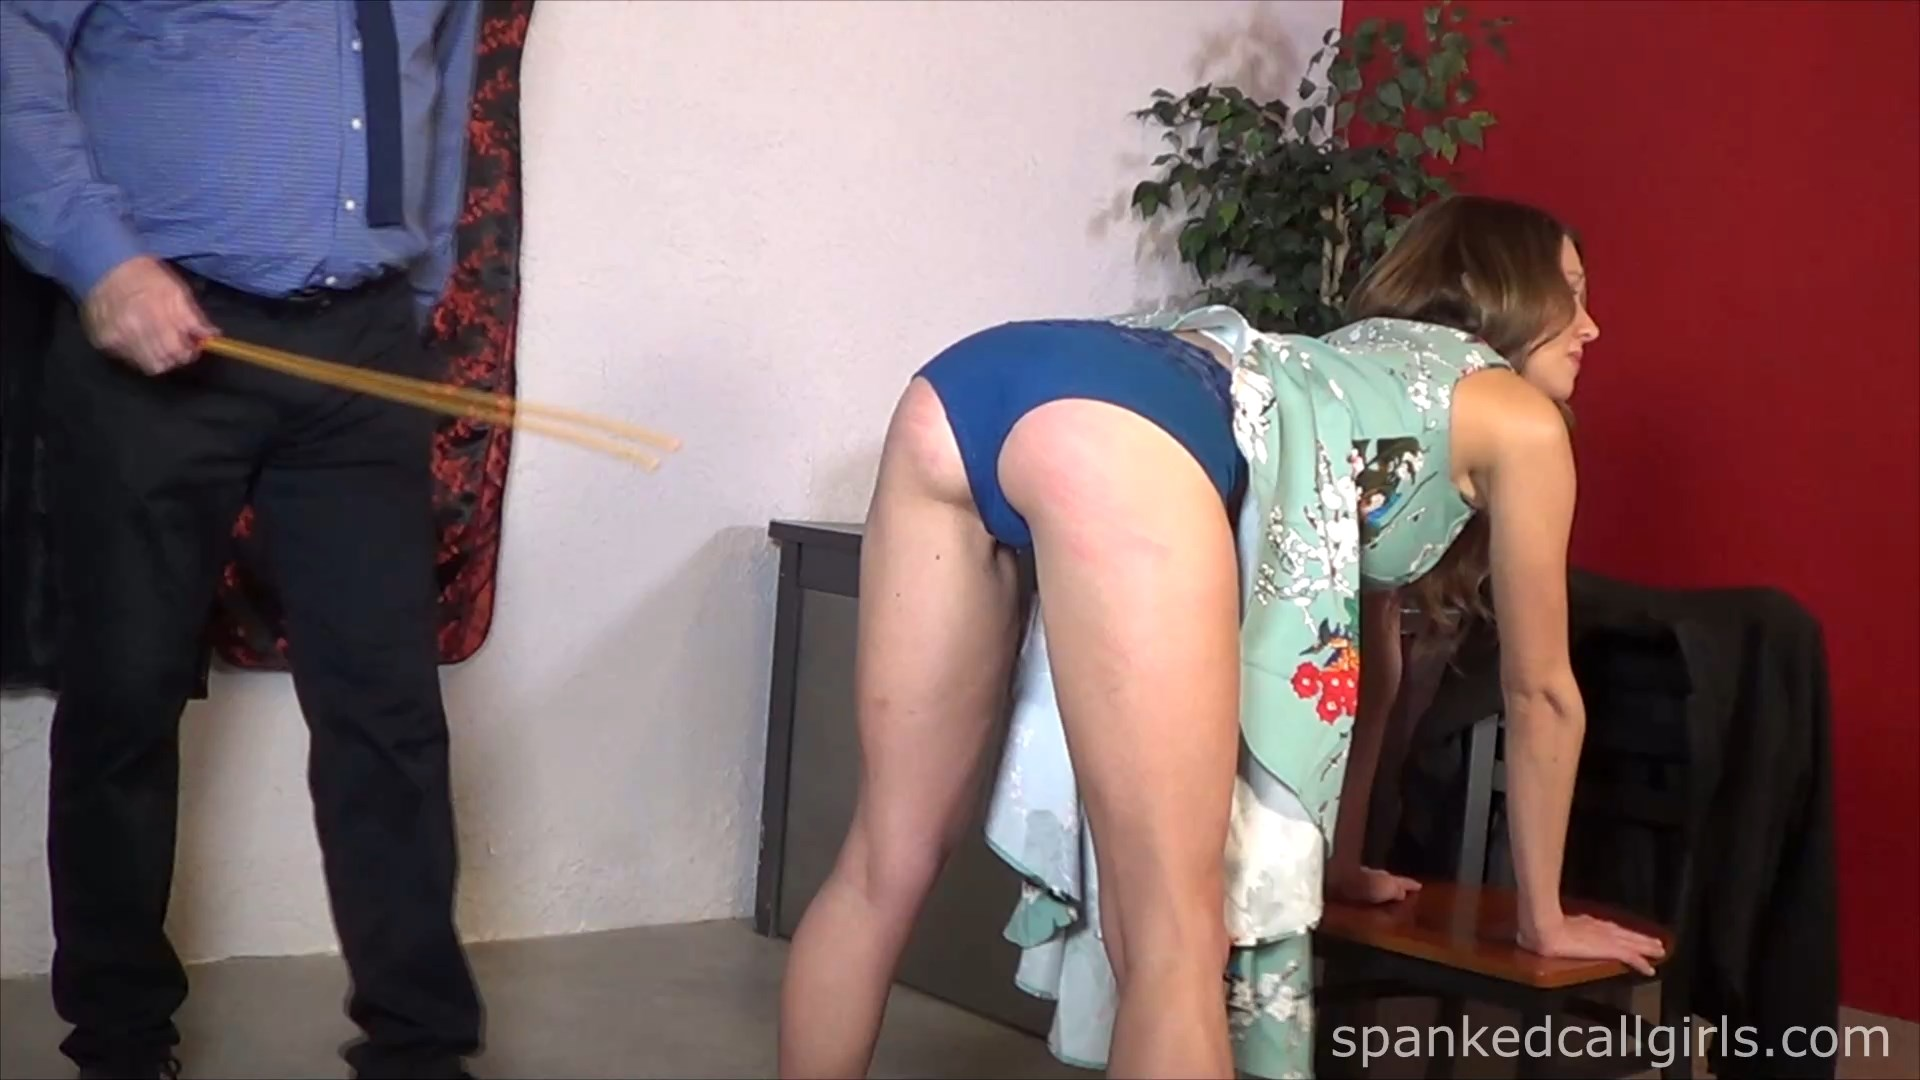 Spanked Call Girls – MP4/Full HD – Chrissy Marie – Chrissy Marie Punished By Boss Day 2